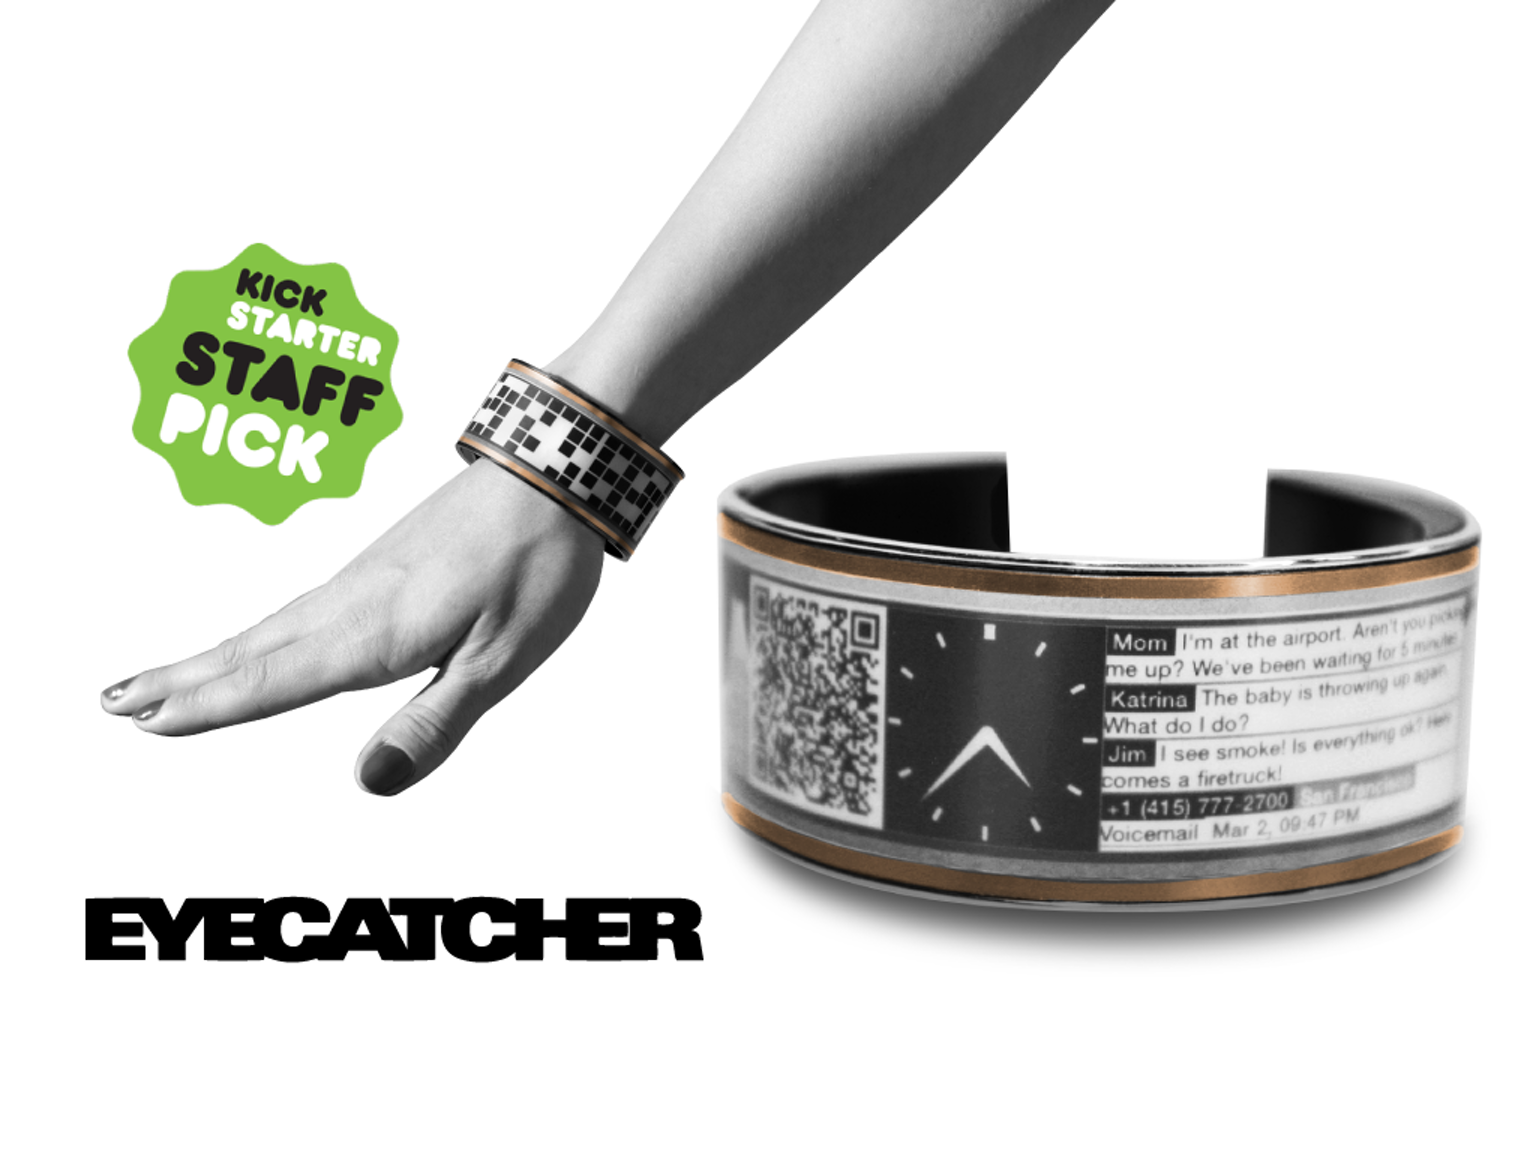 A smart bracelet that fuses art, fashion and technology by displaying custom images, slideshows, app-notifications and breaking news.